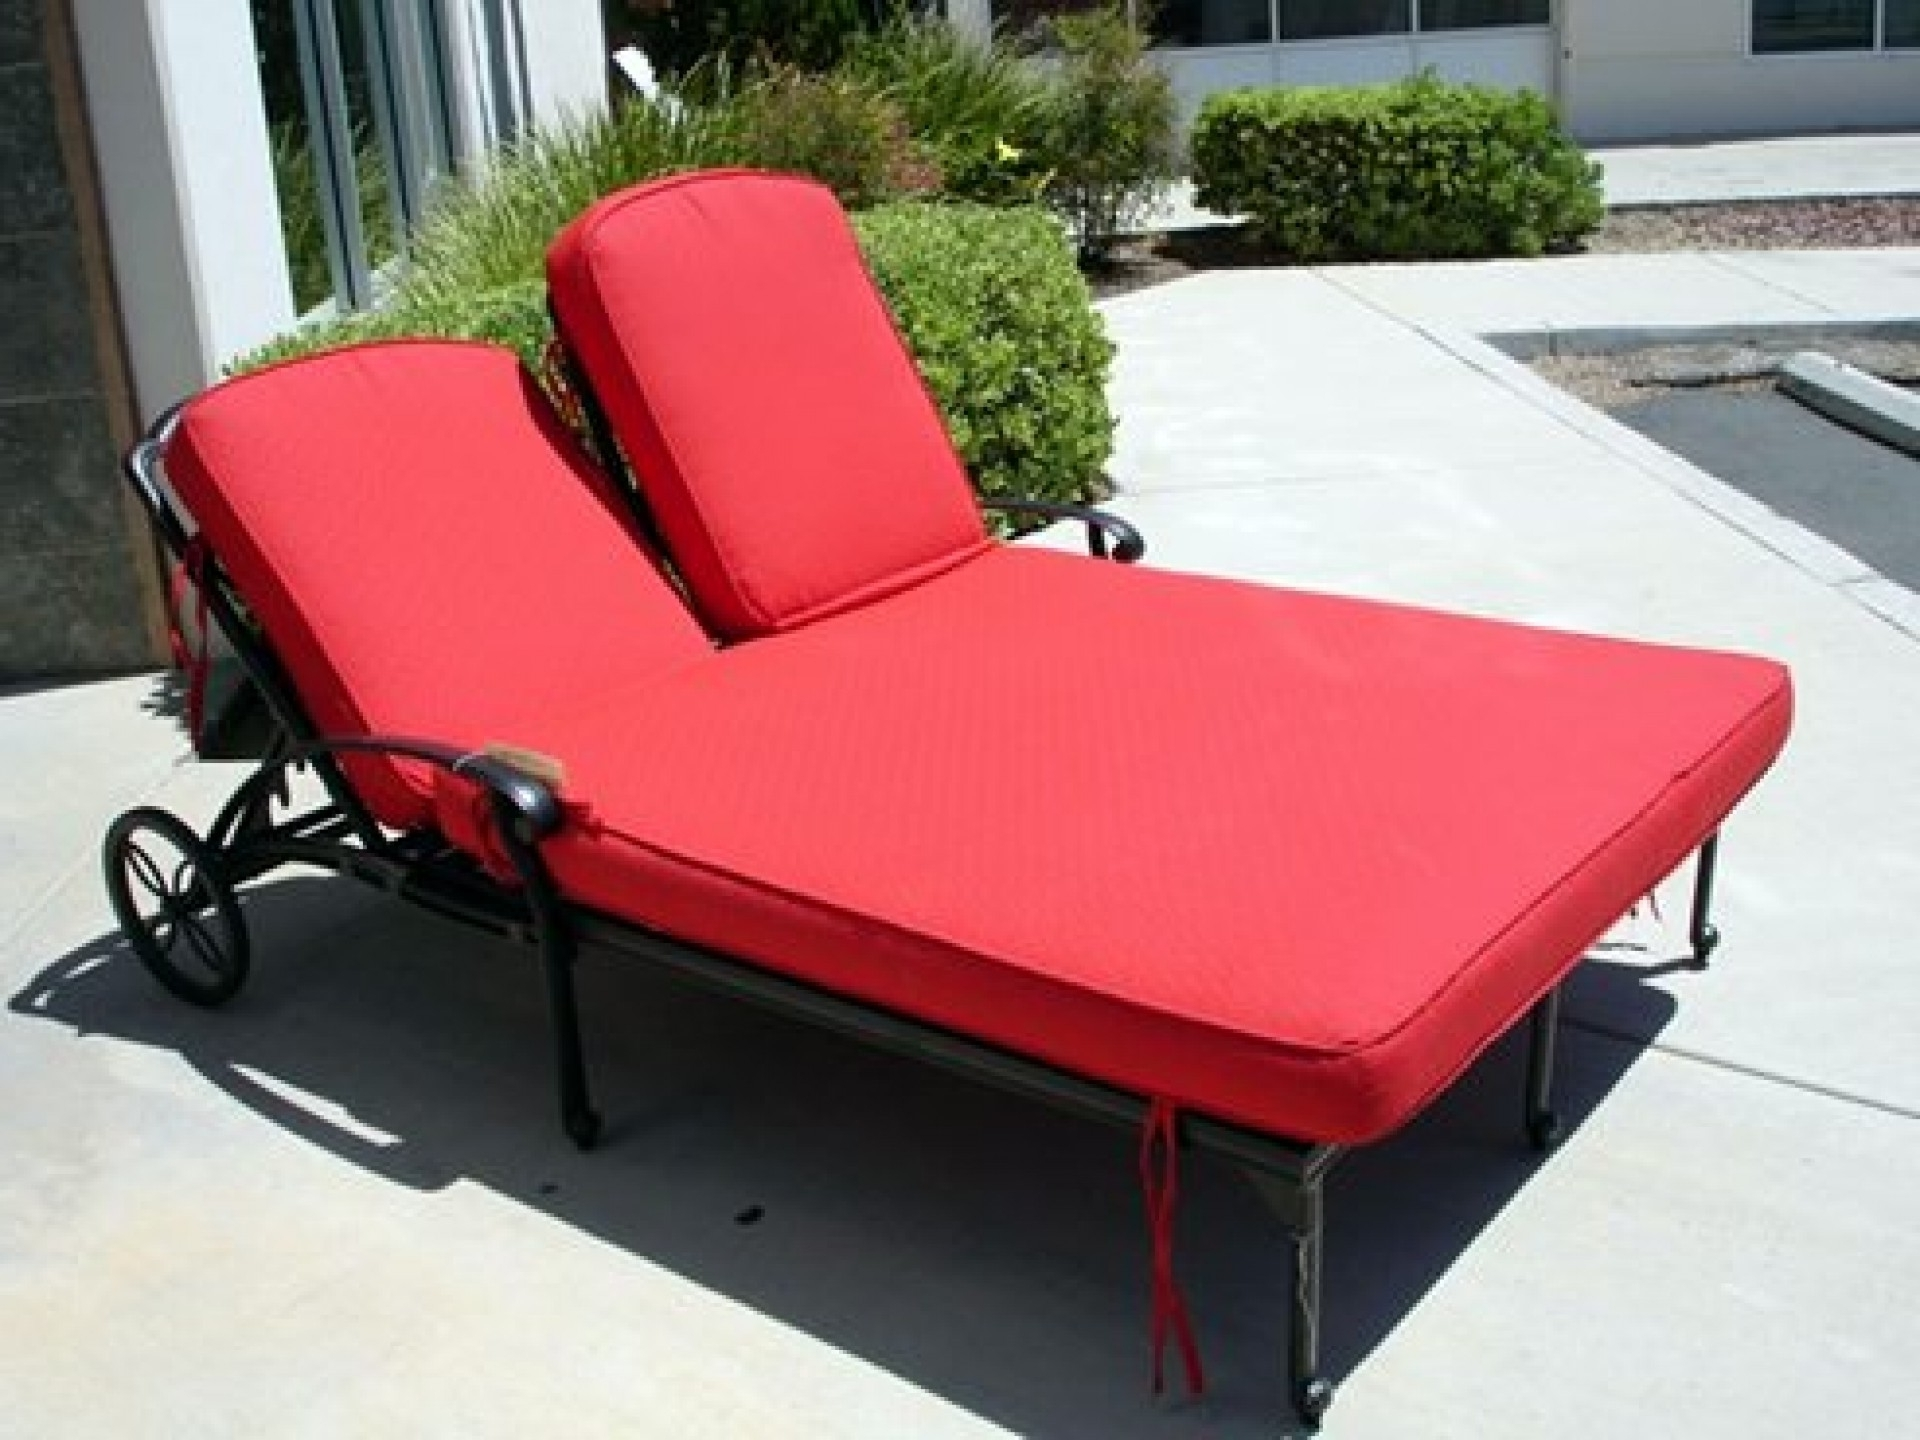 2017 Convertible Chair : For Outside Furniture Chaise Lounge Chair Pads In Outdoor Cushions For Chaise Lounge Chairs (View 2 of 15)